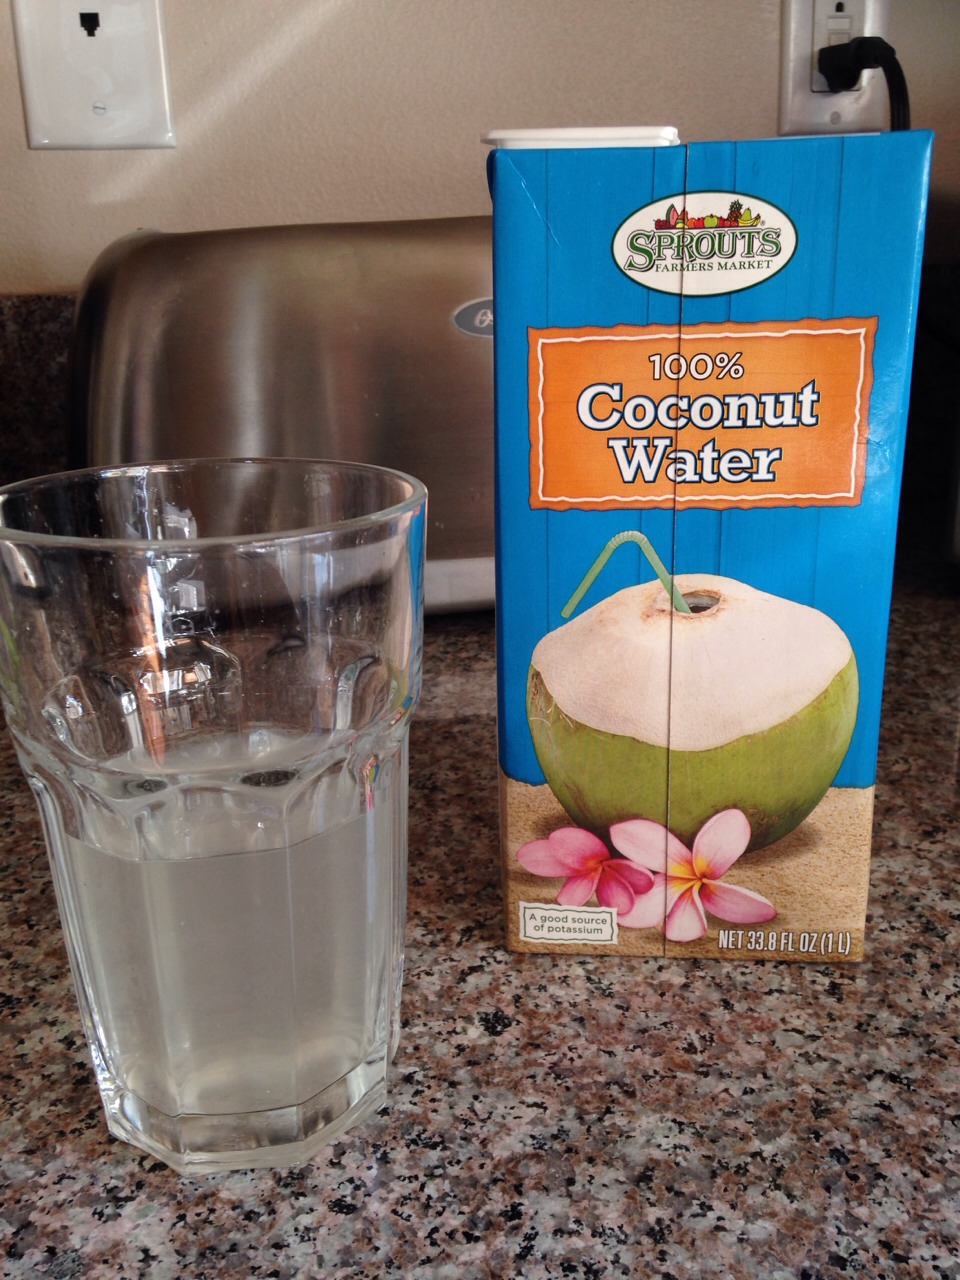 In a glass pour coconut water filling half the glass